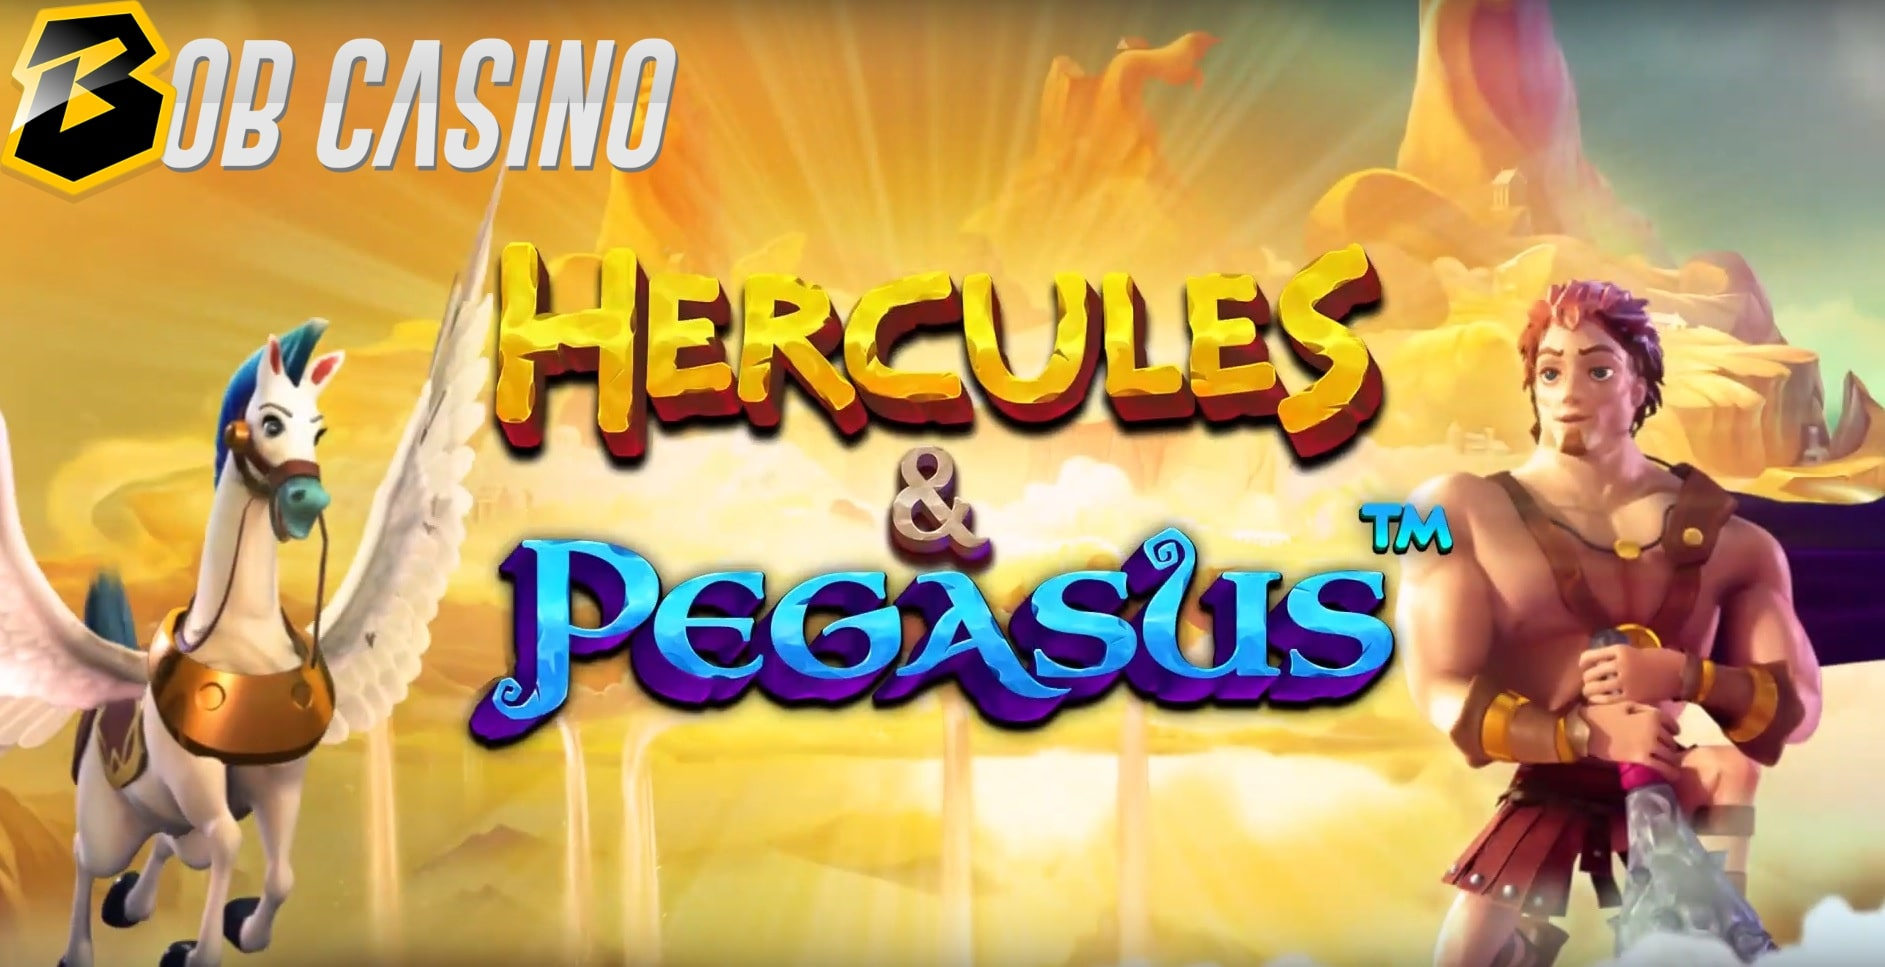 Hercules and Pegasus Slot Review (Pragmatic Play)